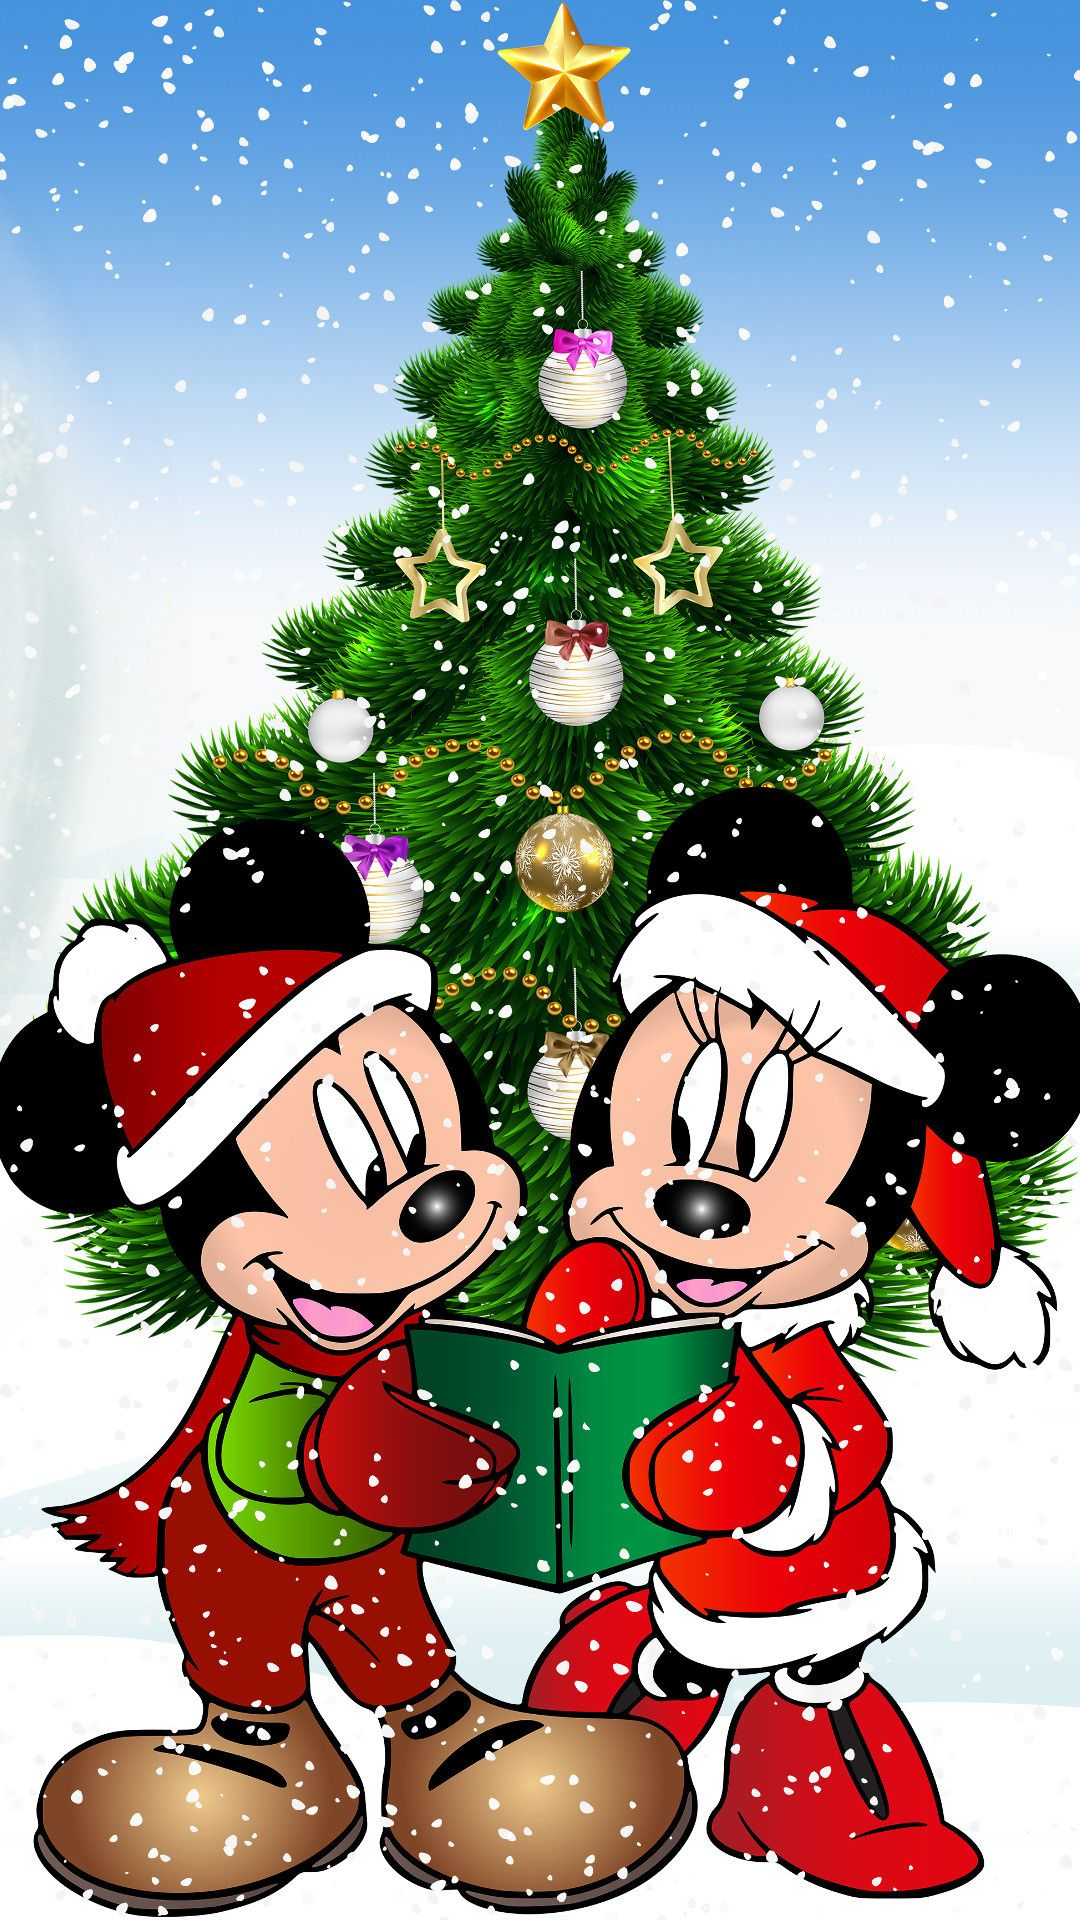 Disney Christmas Iphone Wallpapers Top Free Disney Christmas Iphone Backgrounds Wallpaperaccess